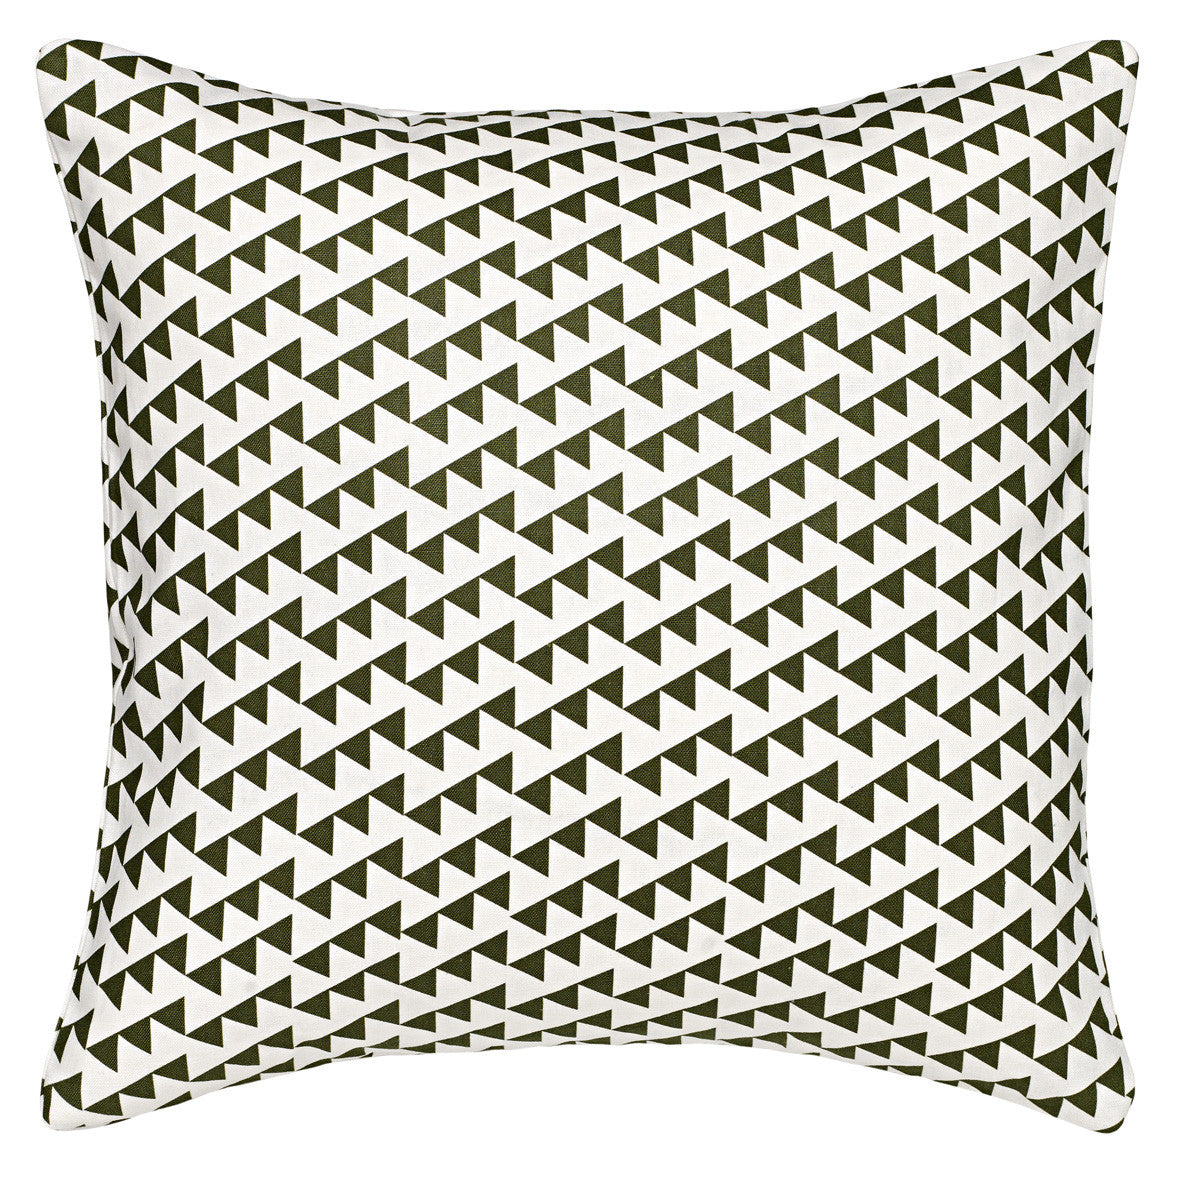 "Bunting Geometric Pattern Linen Cotton Decorative Throw Pillow in Olive Green 45x45cm (18x18"")"